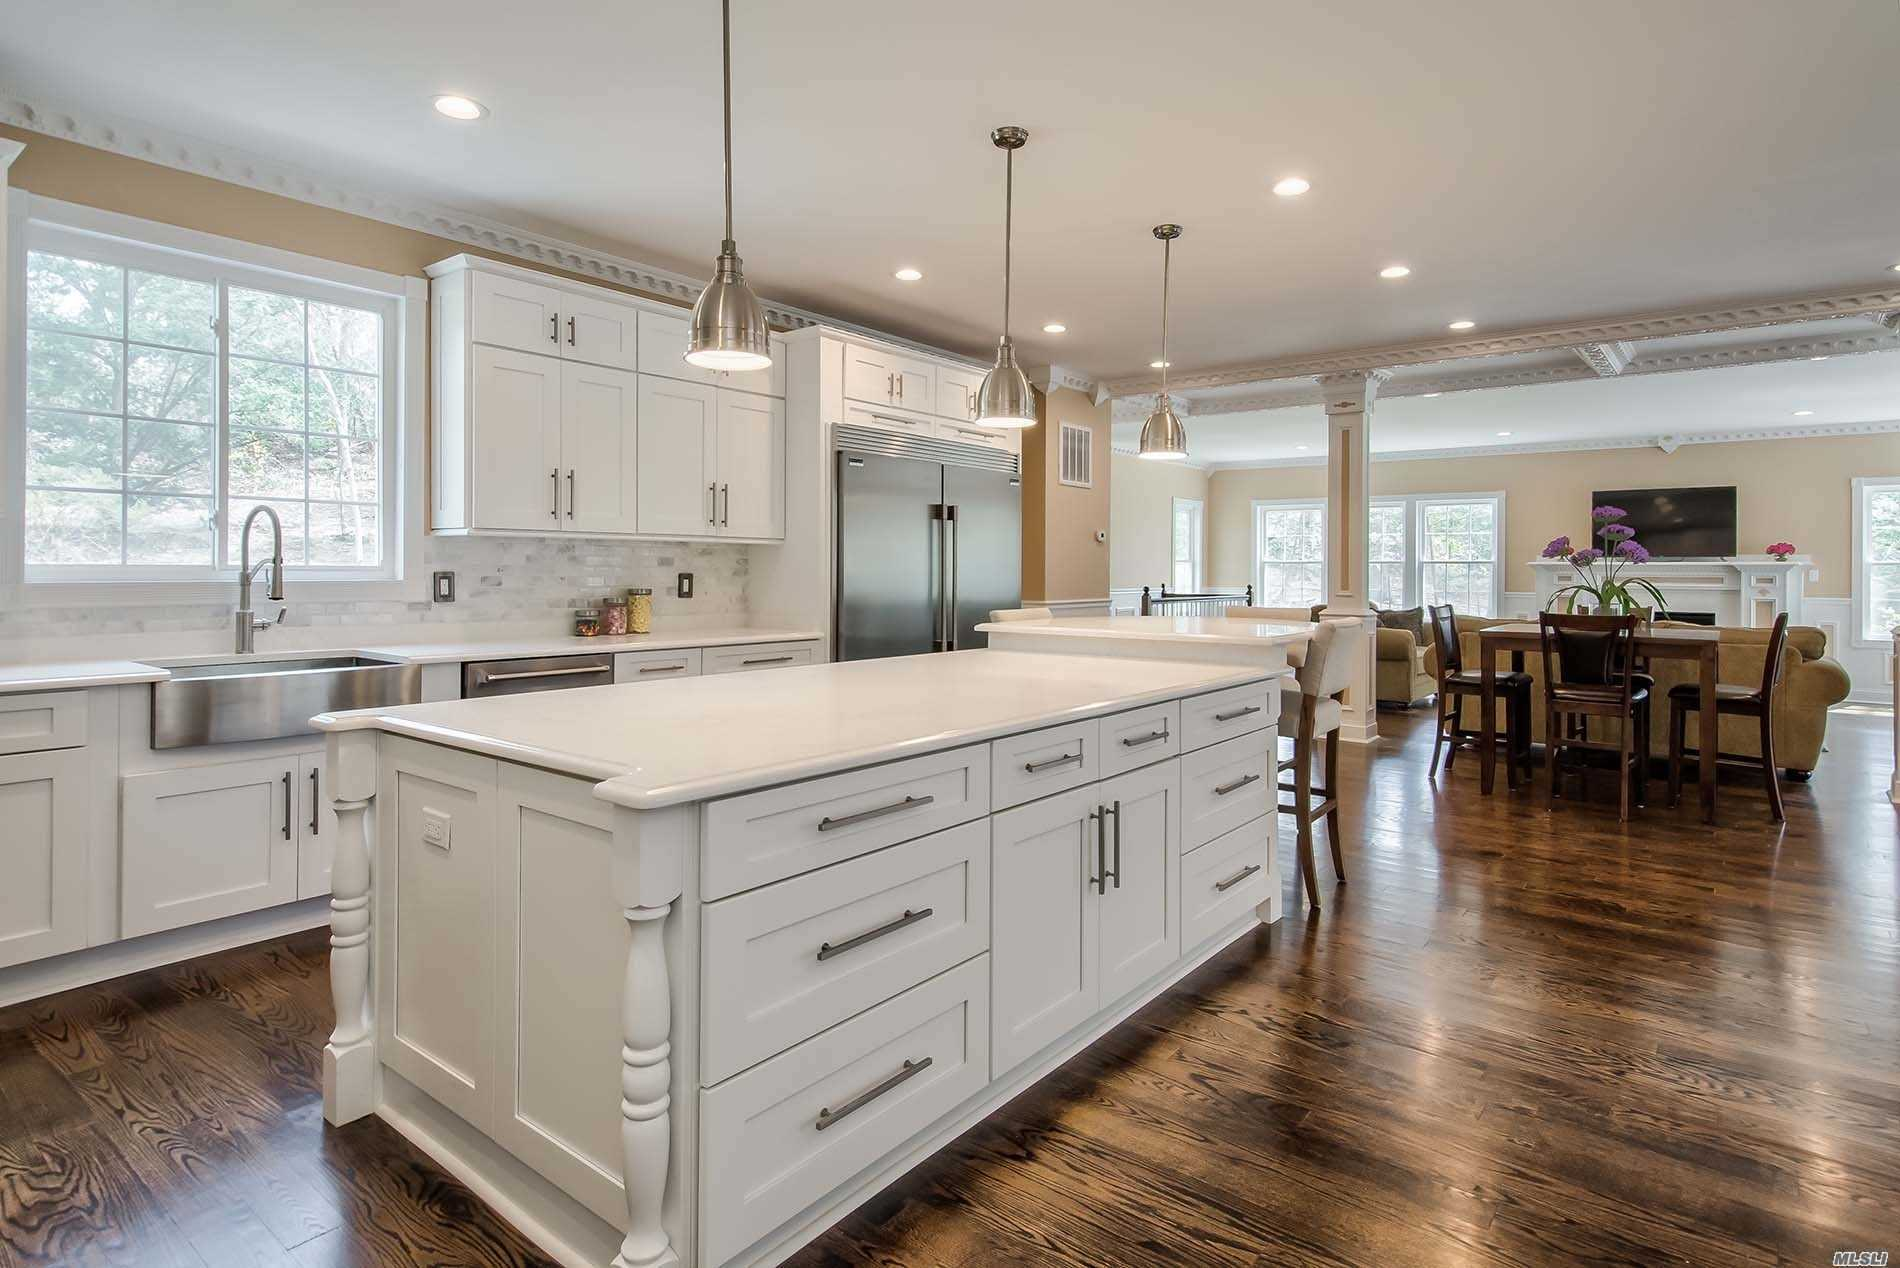 Masterpiece New Construction! Ultimate Luxury Living In This Stunning 5 Bedroom, 5.5 Bath Colonial On 1 Serene Acre In North Syosset. 2 Story Entry Foyer, Detailed Moldings & Millwork, French Doors, Elegant Formal Rooms, Great Room W/ Fireplace, Chef's Kitchen W/Large Center Island & High End Appliances, Dramatic Breakfast Room, Grand Master Bedroom Suite, Designer Baths, Finished Basement W/Outside Entrance, Trex Deck, Inground Pool. A Dream House Just Completed!